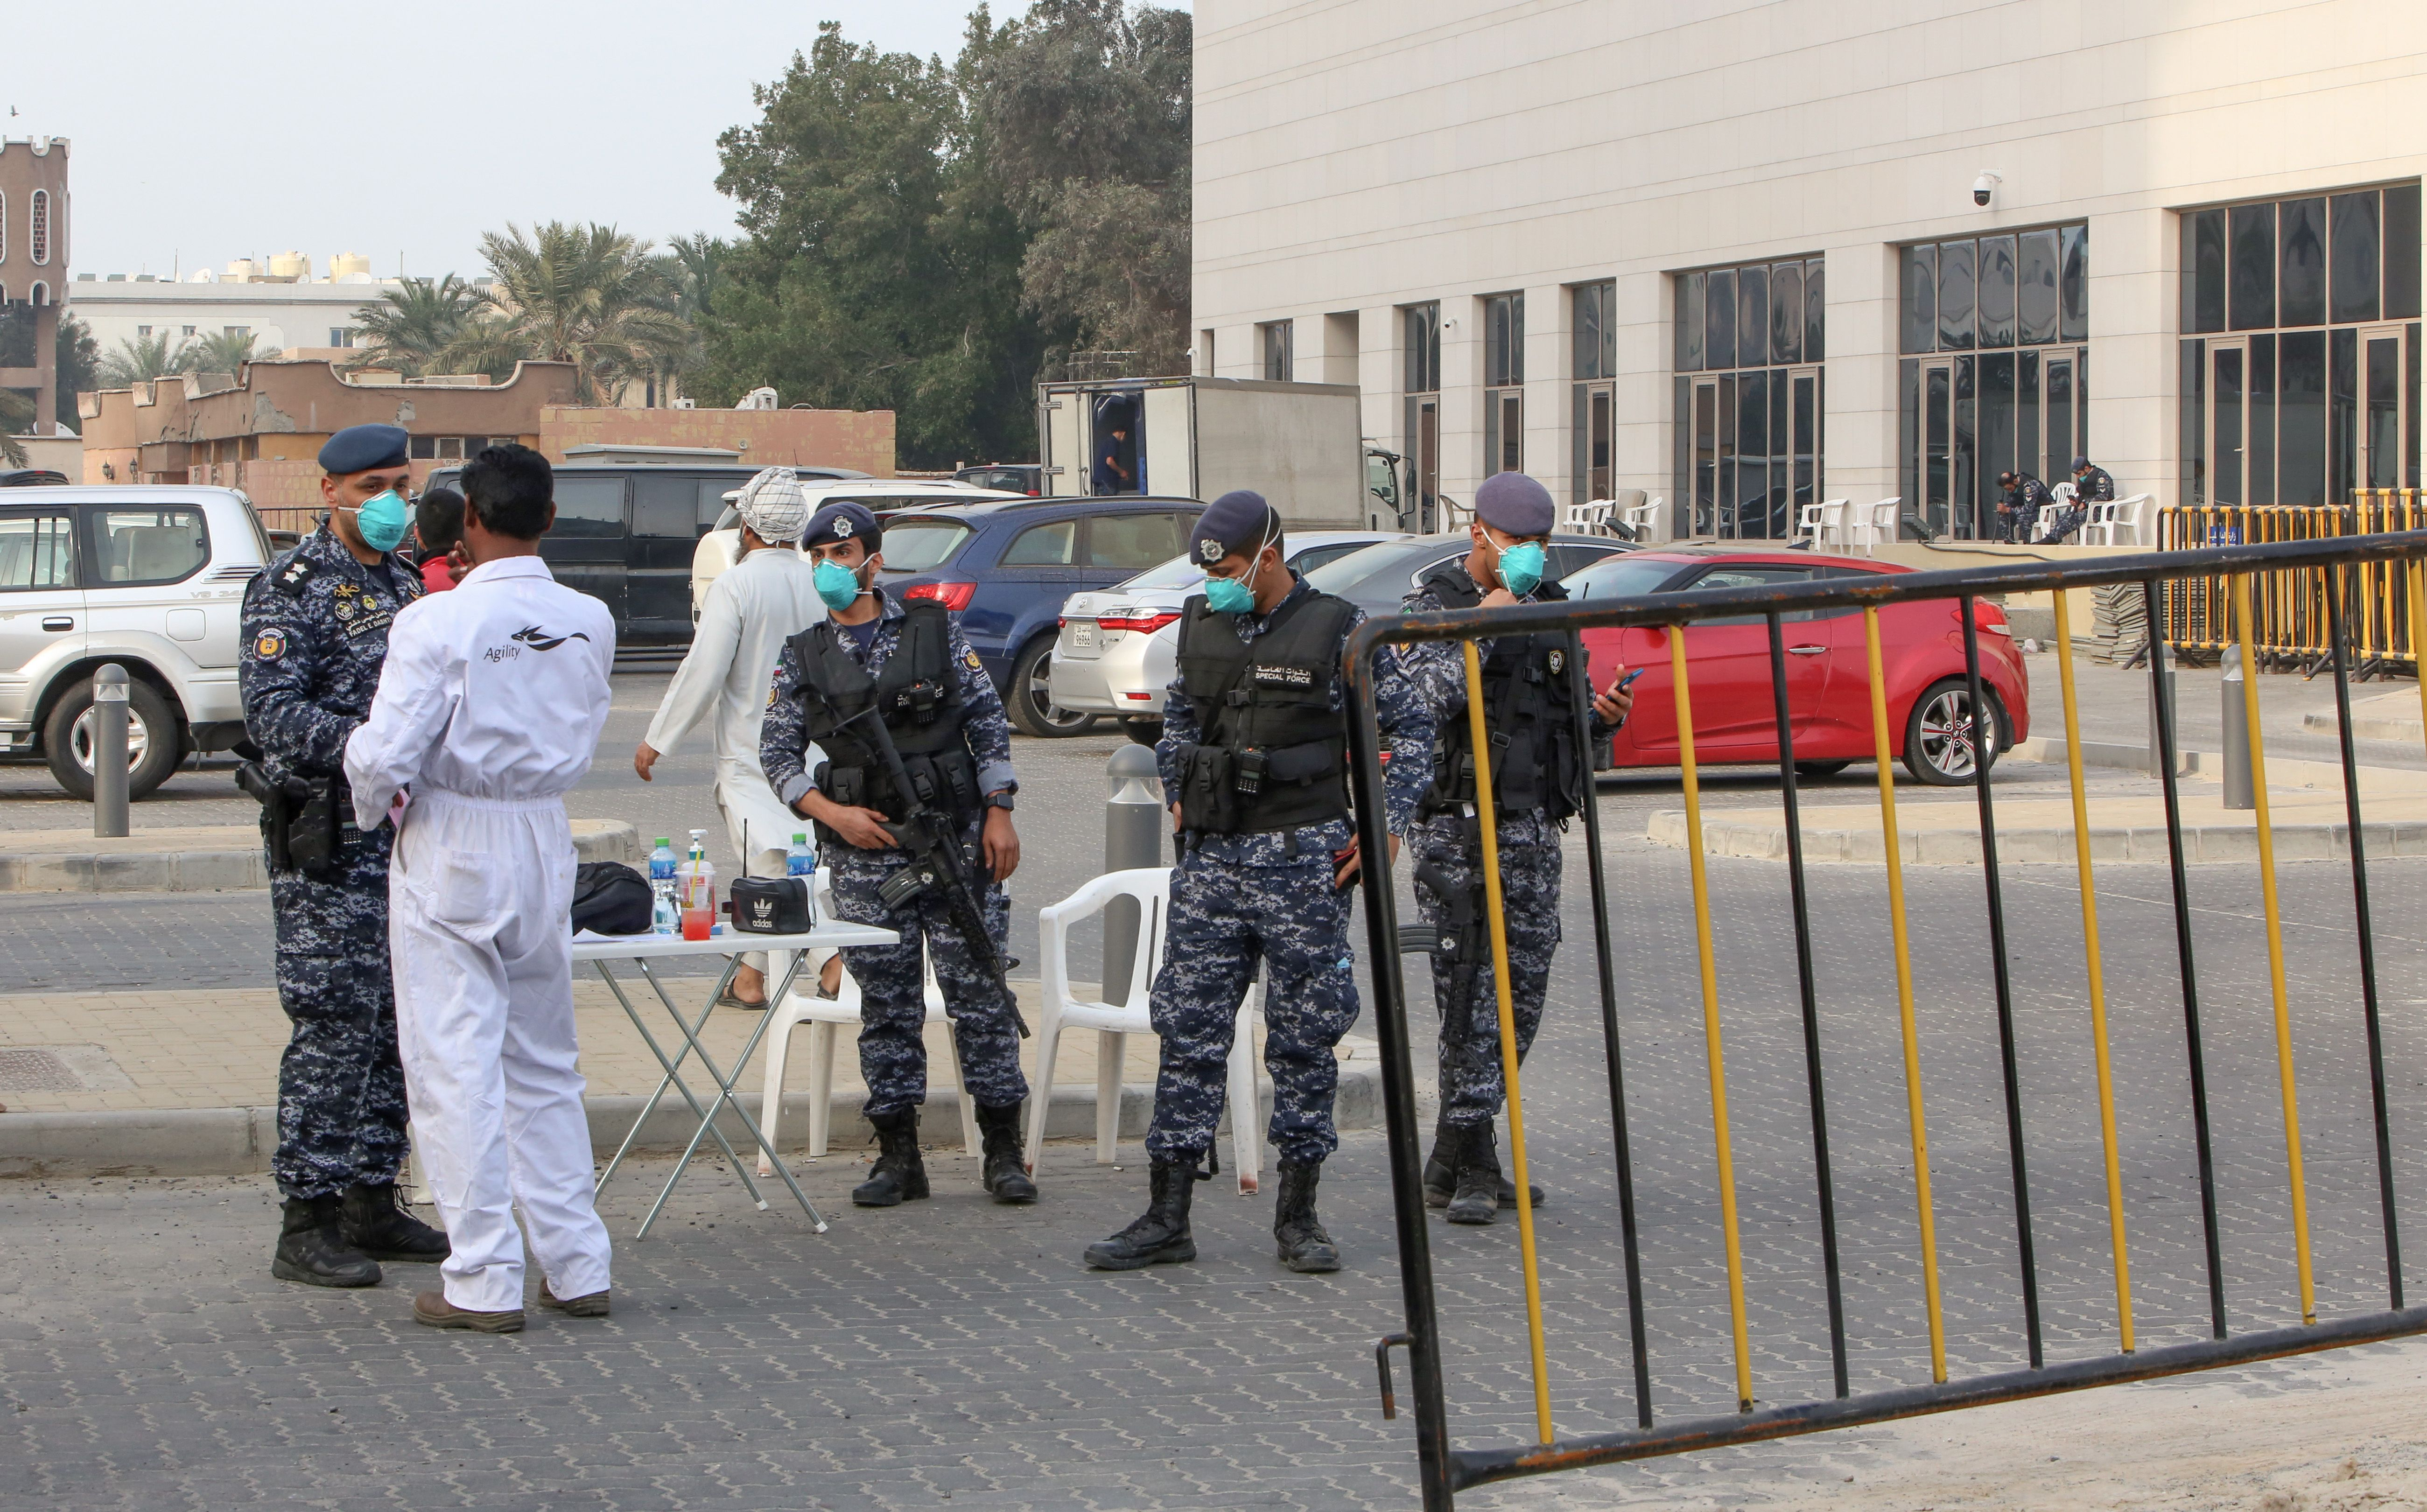 Members of Kuwait's national guard keep watch outside a hotel in the capital where Kuwaitis returning from Iran are quarantined and tested for coronavirus.